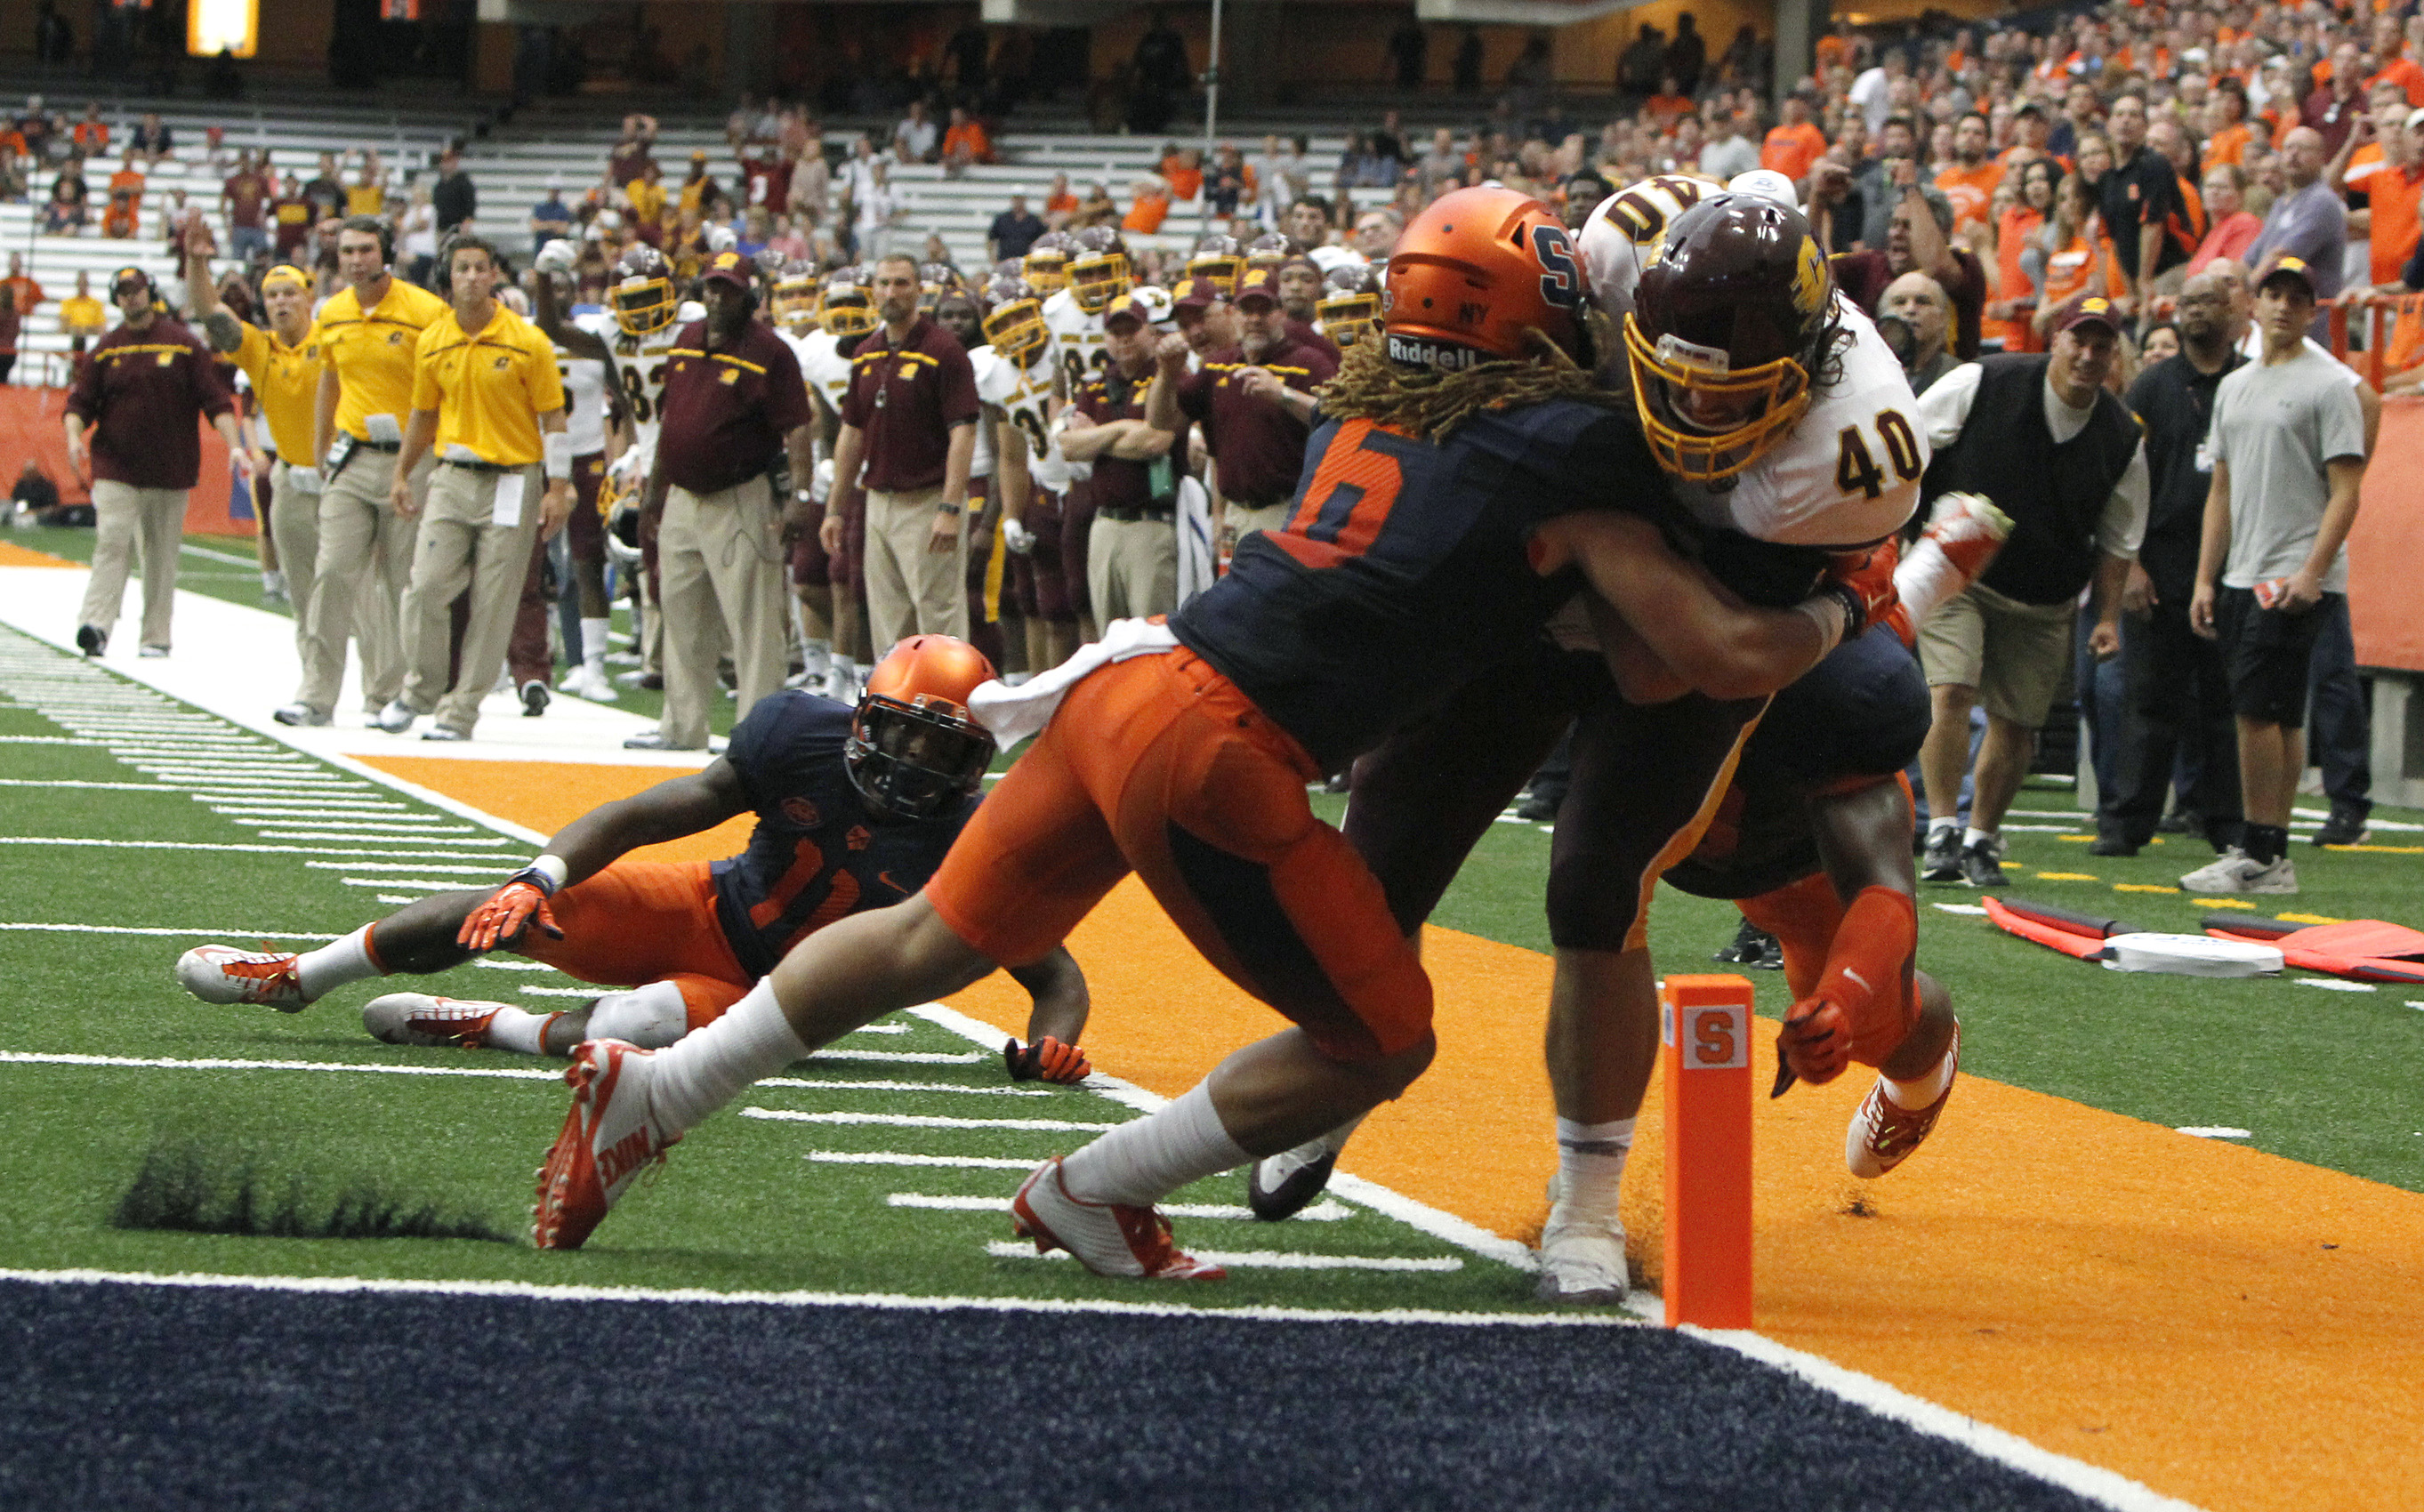 Syracuse's Rodney Williams (left) pushes Central Michigan's Joe Bacci (right) out of bounds on the one yard line in overtime of an NCAA college football game in Syracuse, N.Y., Saturday, Sept. 19, 2015. Syracuse won 30  27. (AP Photo/Nick Lisi)